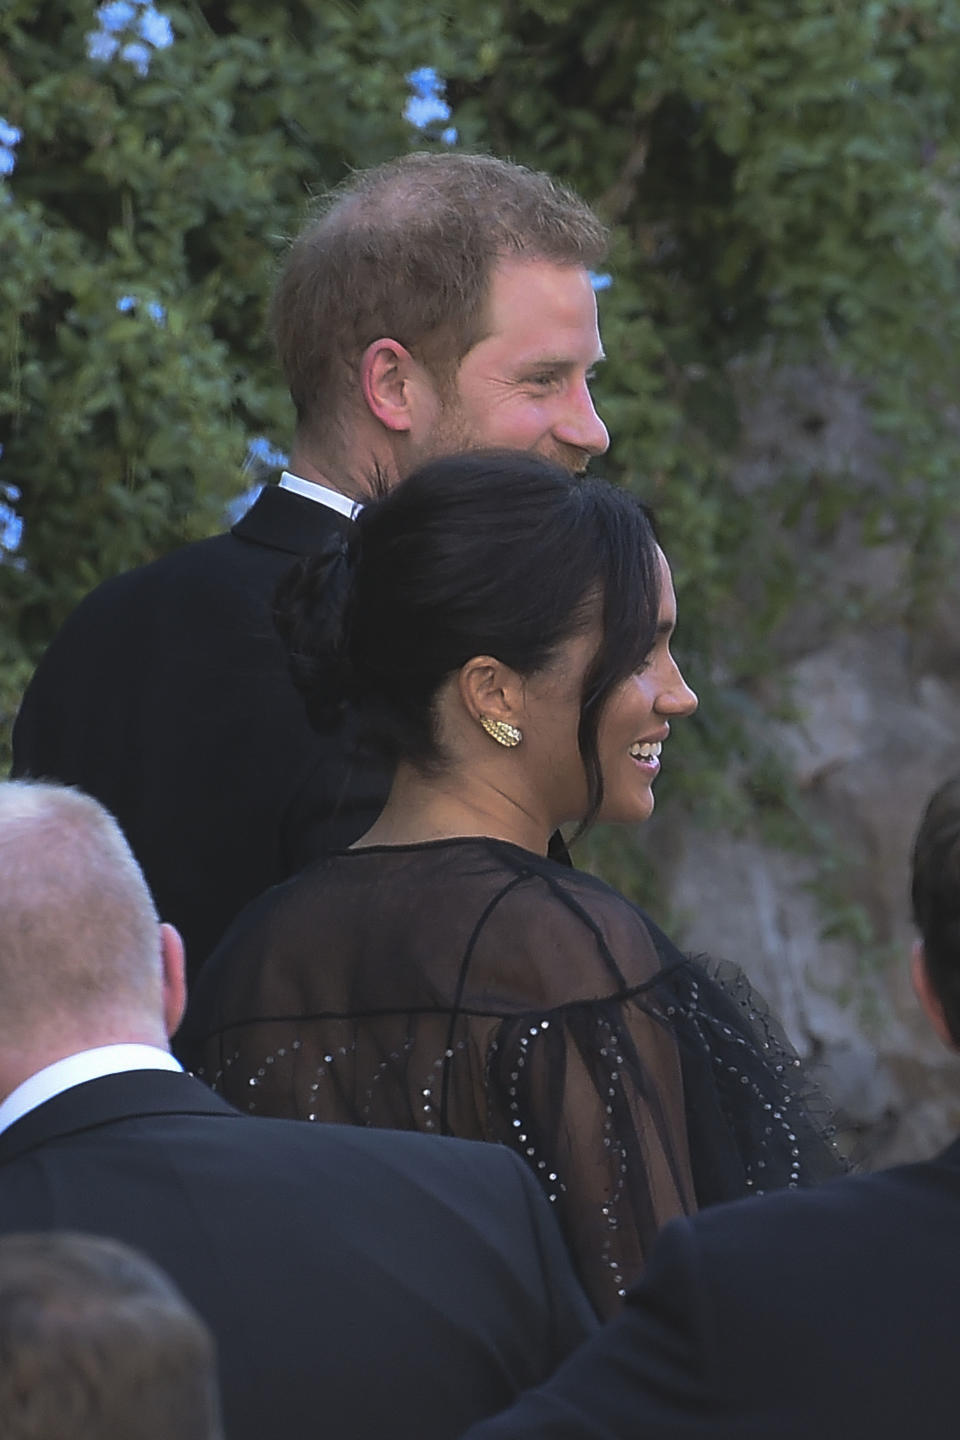 Prince Harry and Meghan Markle arrived at Misha Nonoo's Italian wedding. Photo: Mega.